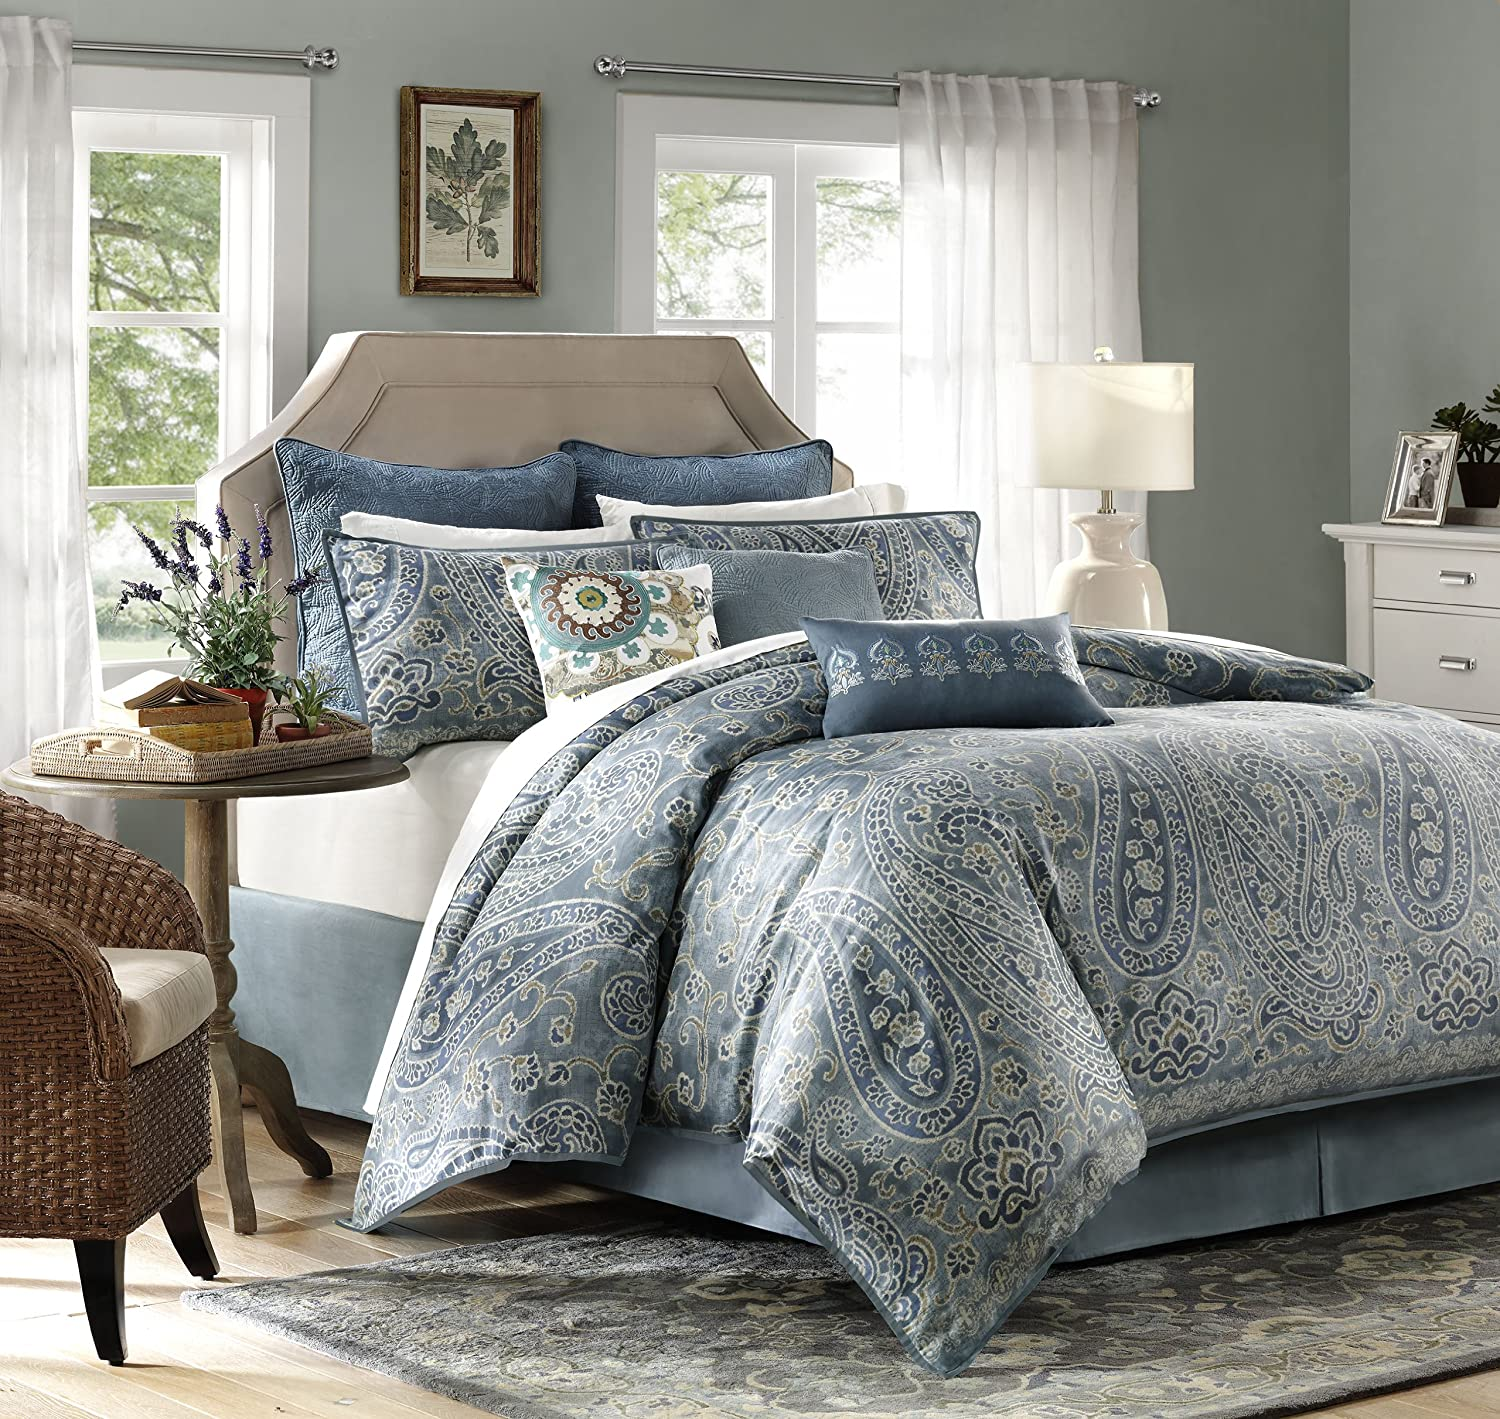 Harbor House Belcourt 4 Piece Comforter Set, King, Multi Color